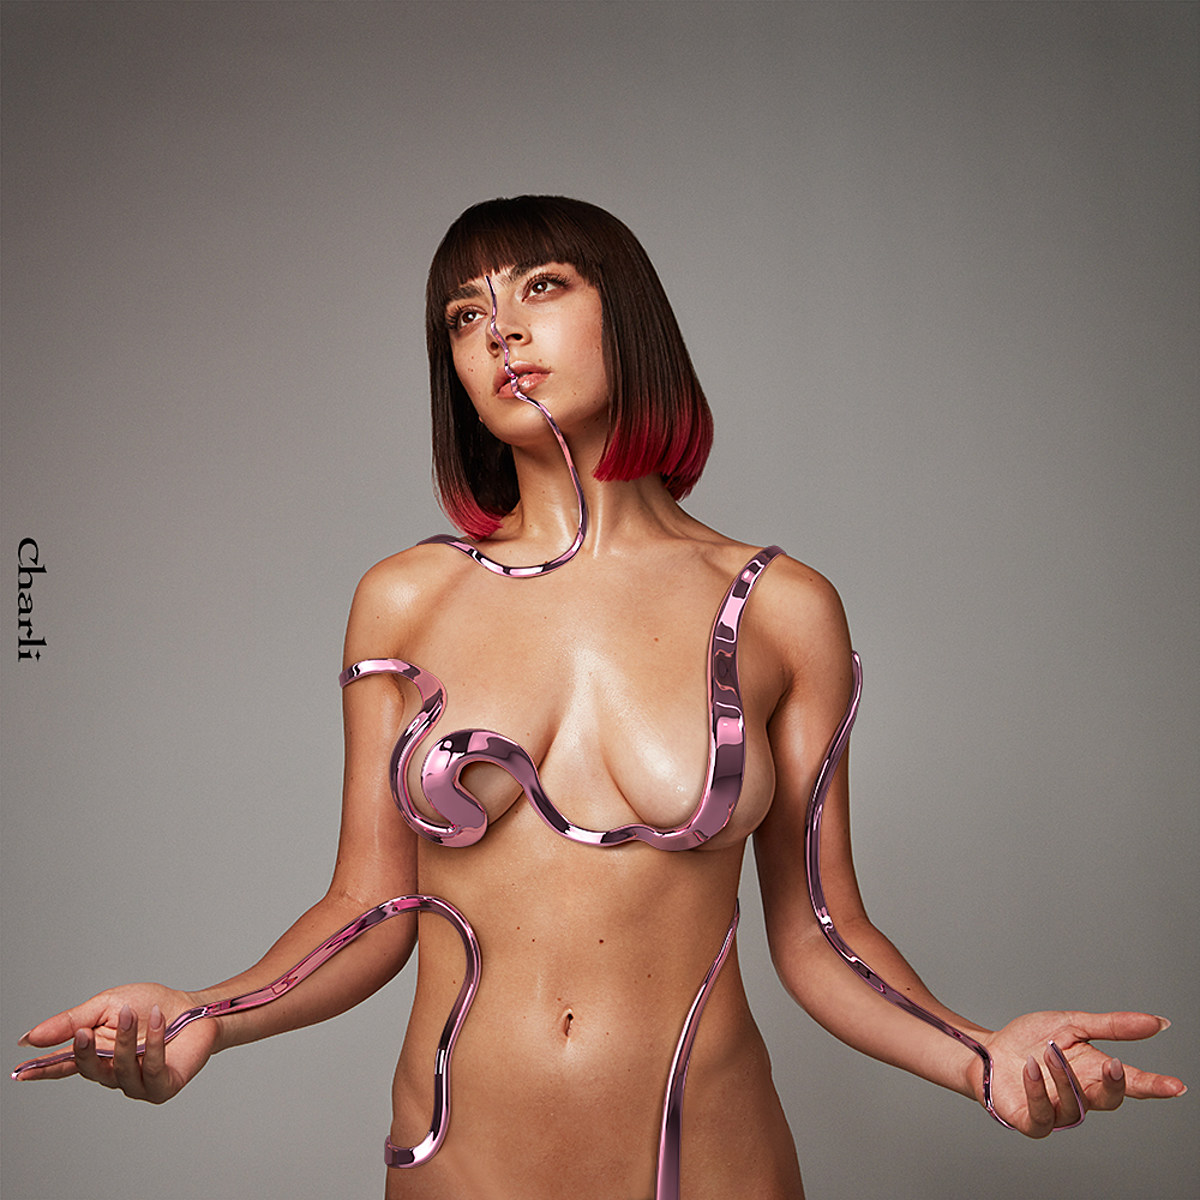 review: Charli XCX's 'Charli' is the most complete realization of her artistry yet